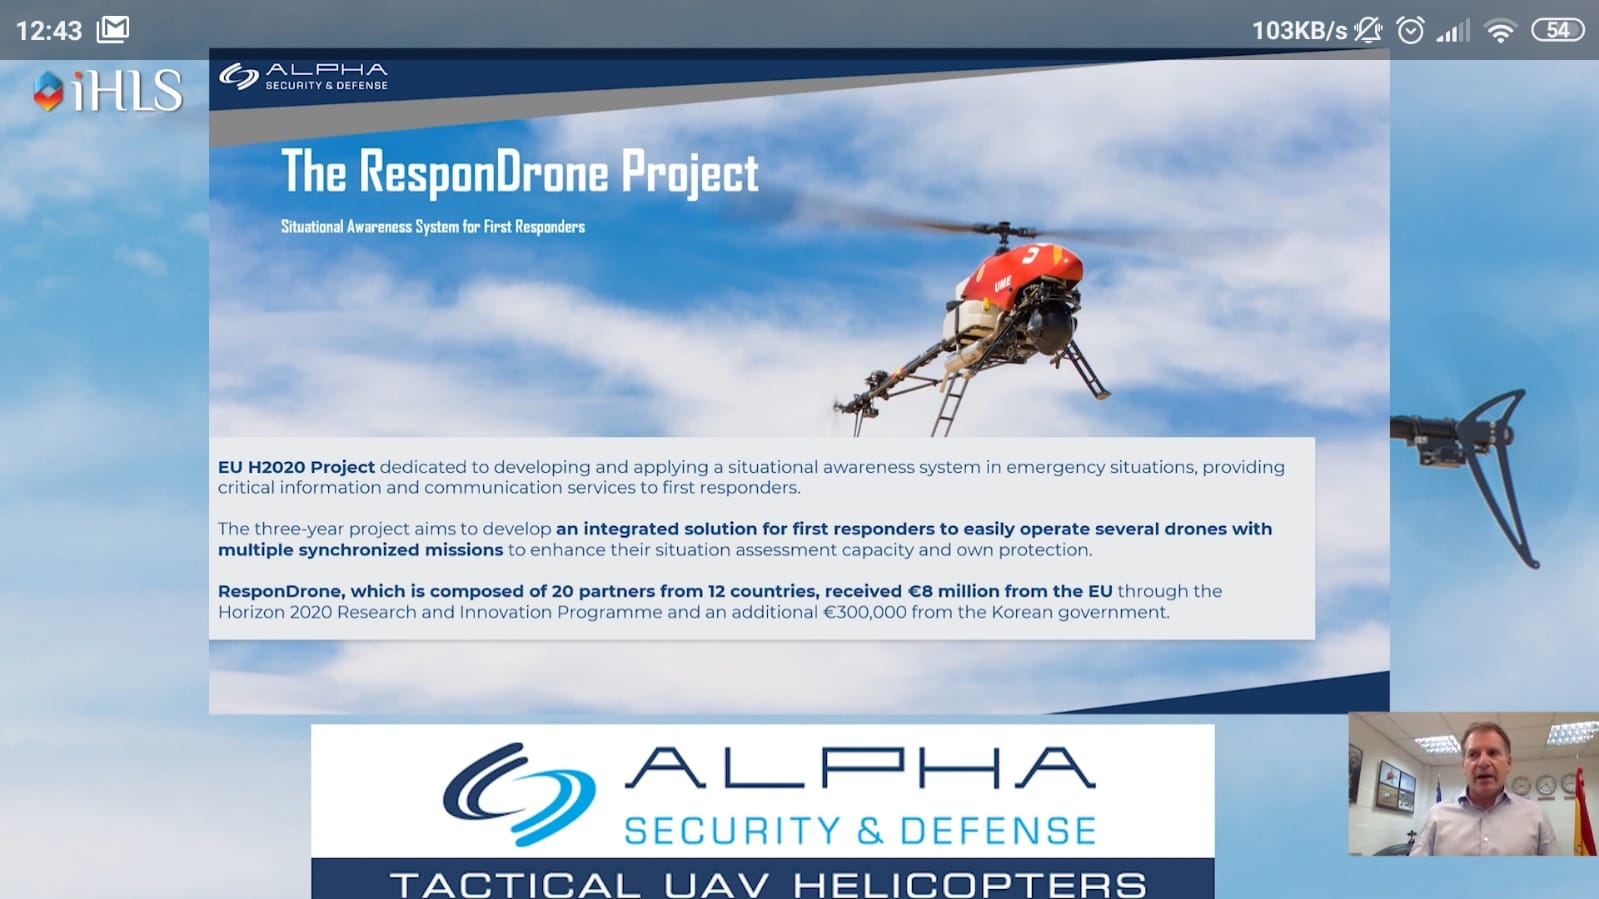 Advantages of ResponDrone system flexibility & durability highlighted at AUS&R & AUVSI 2020 BROADCAST